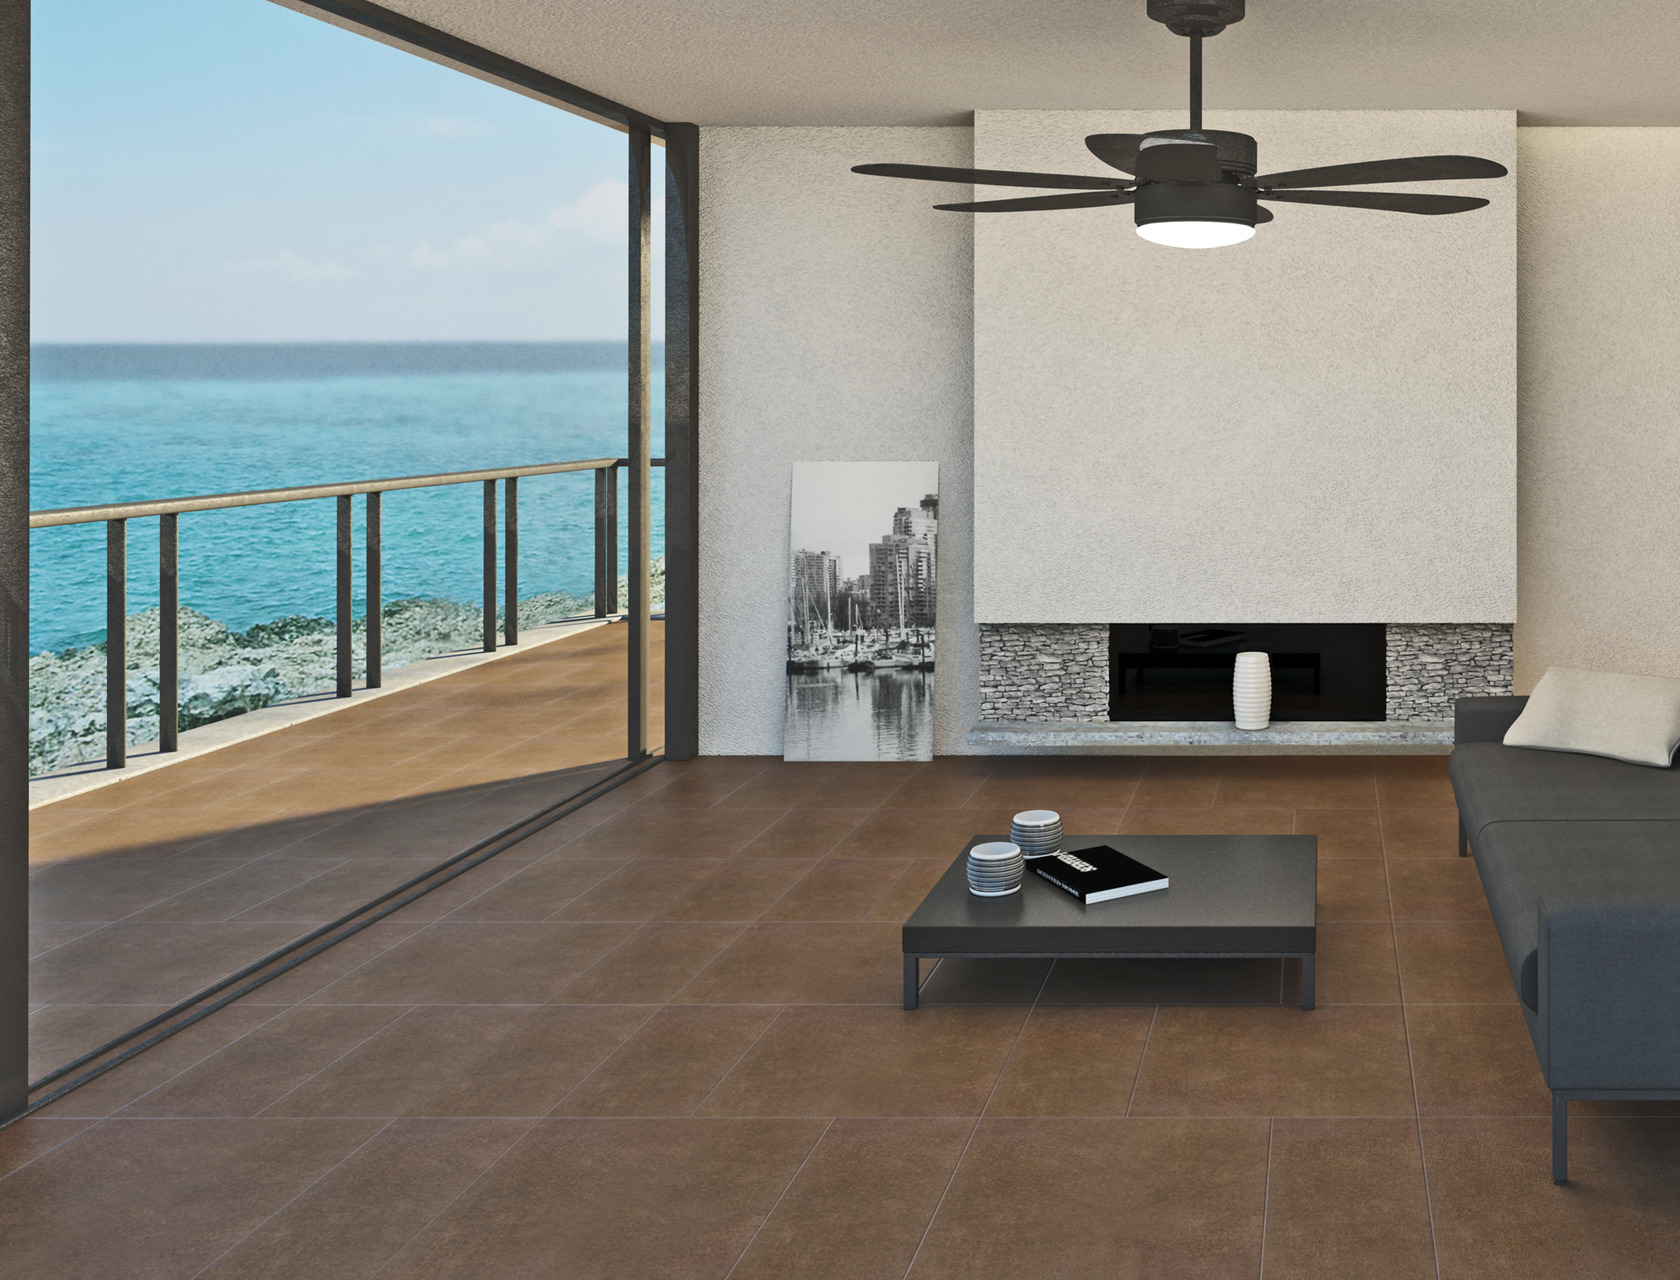 Stone Effect Brown Porcelain Tiles Pietra di Merano